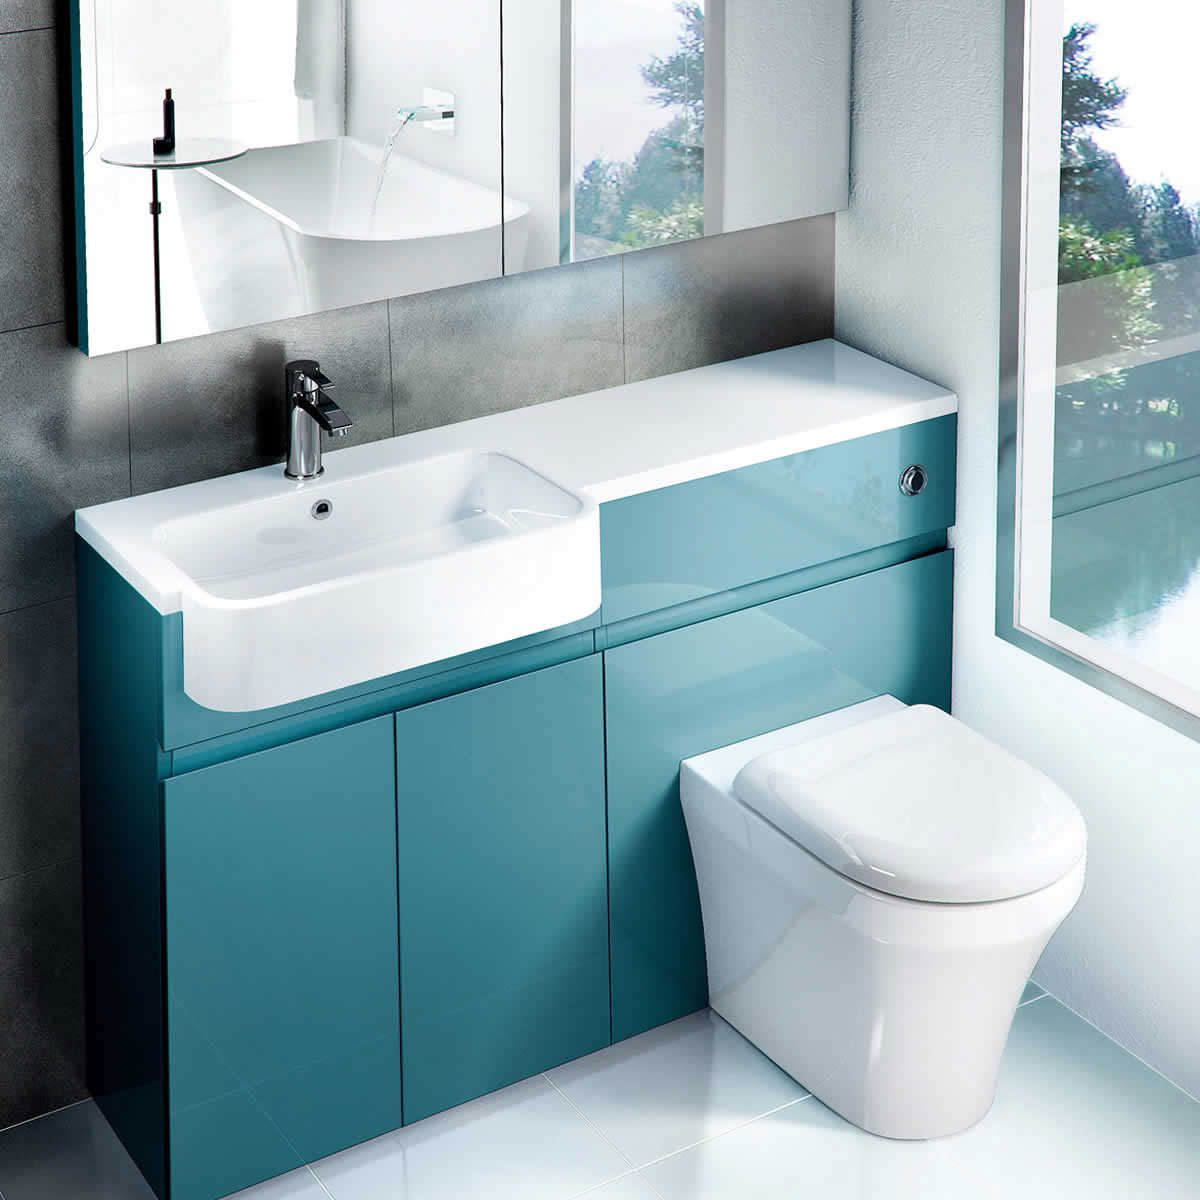 Aqua Cabinets D300 1 Th Lh 1200mm Quattrocast Furniture Basin